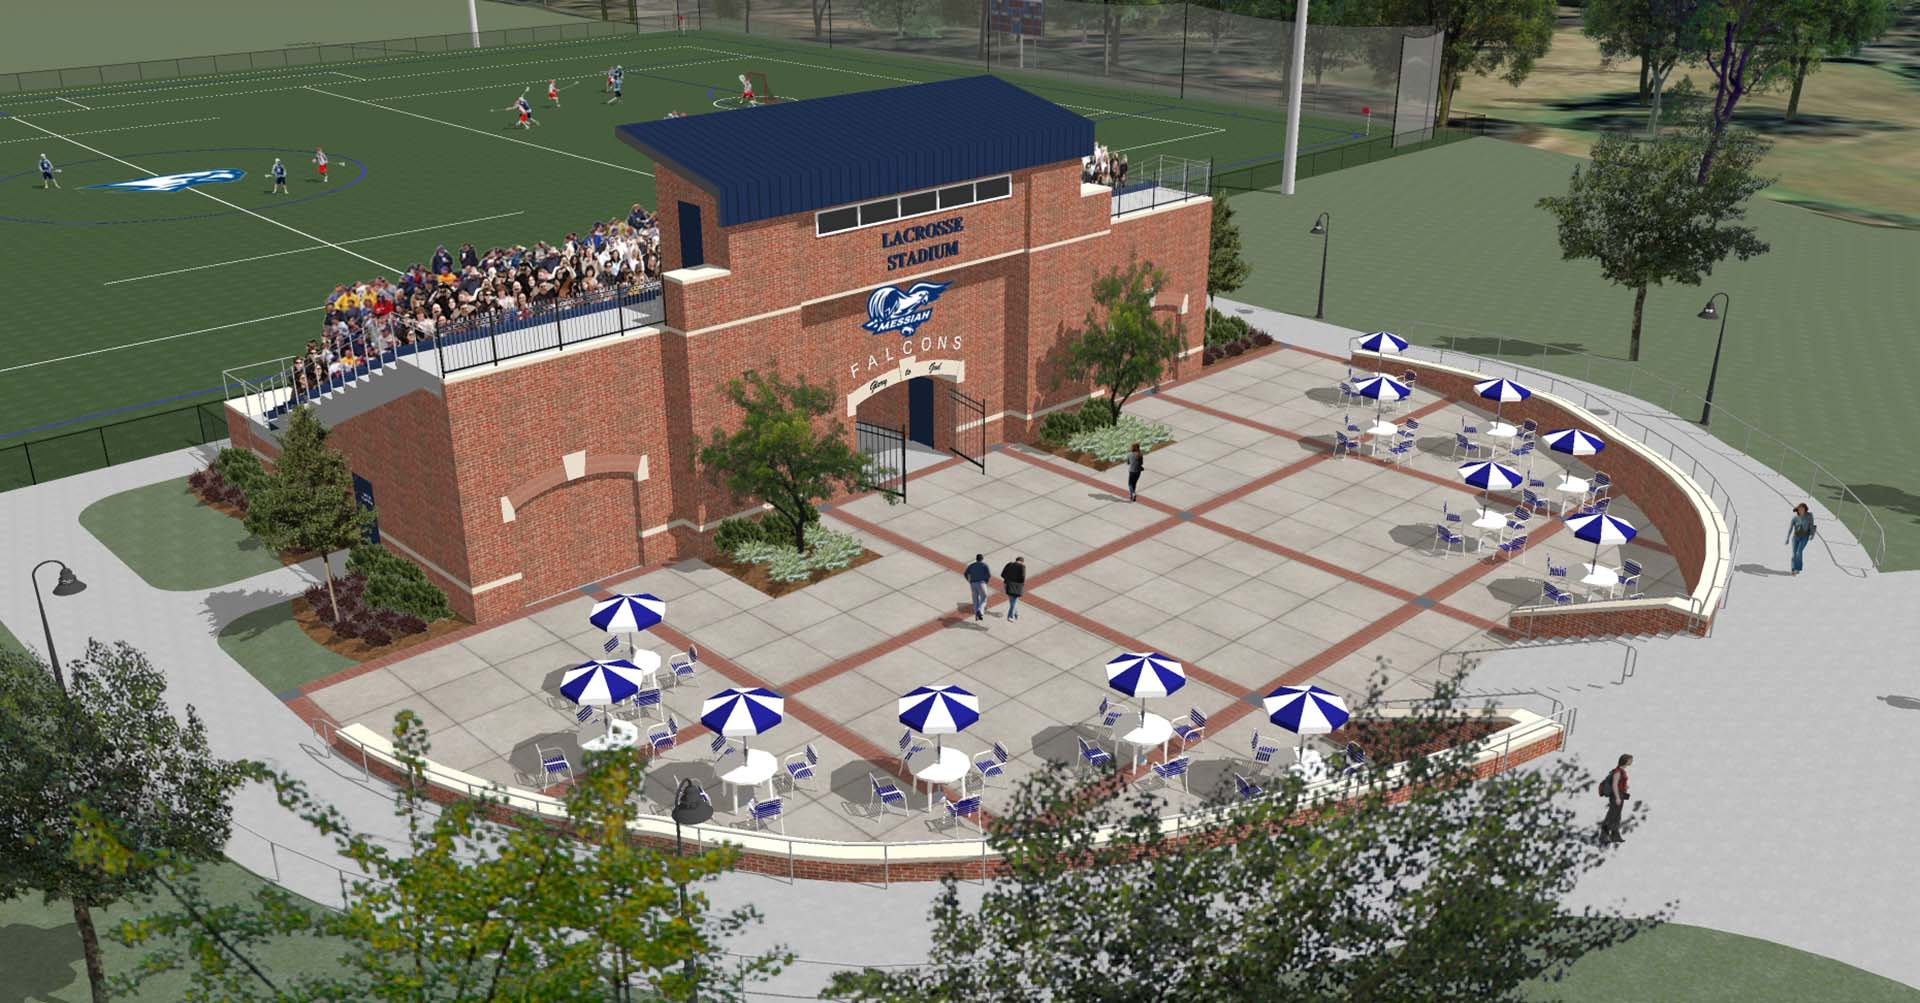 Messiah College Lacrosse Stadium - View 3